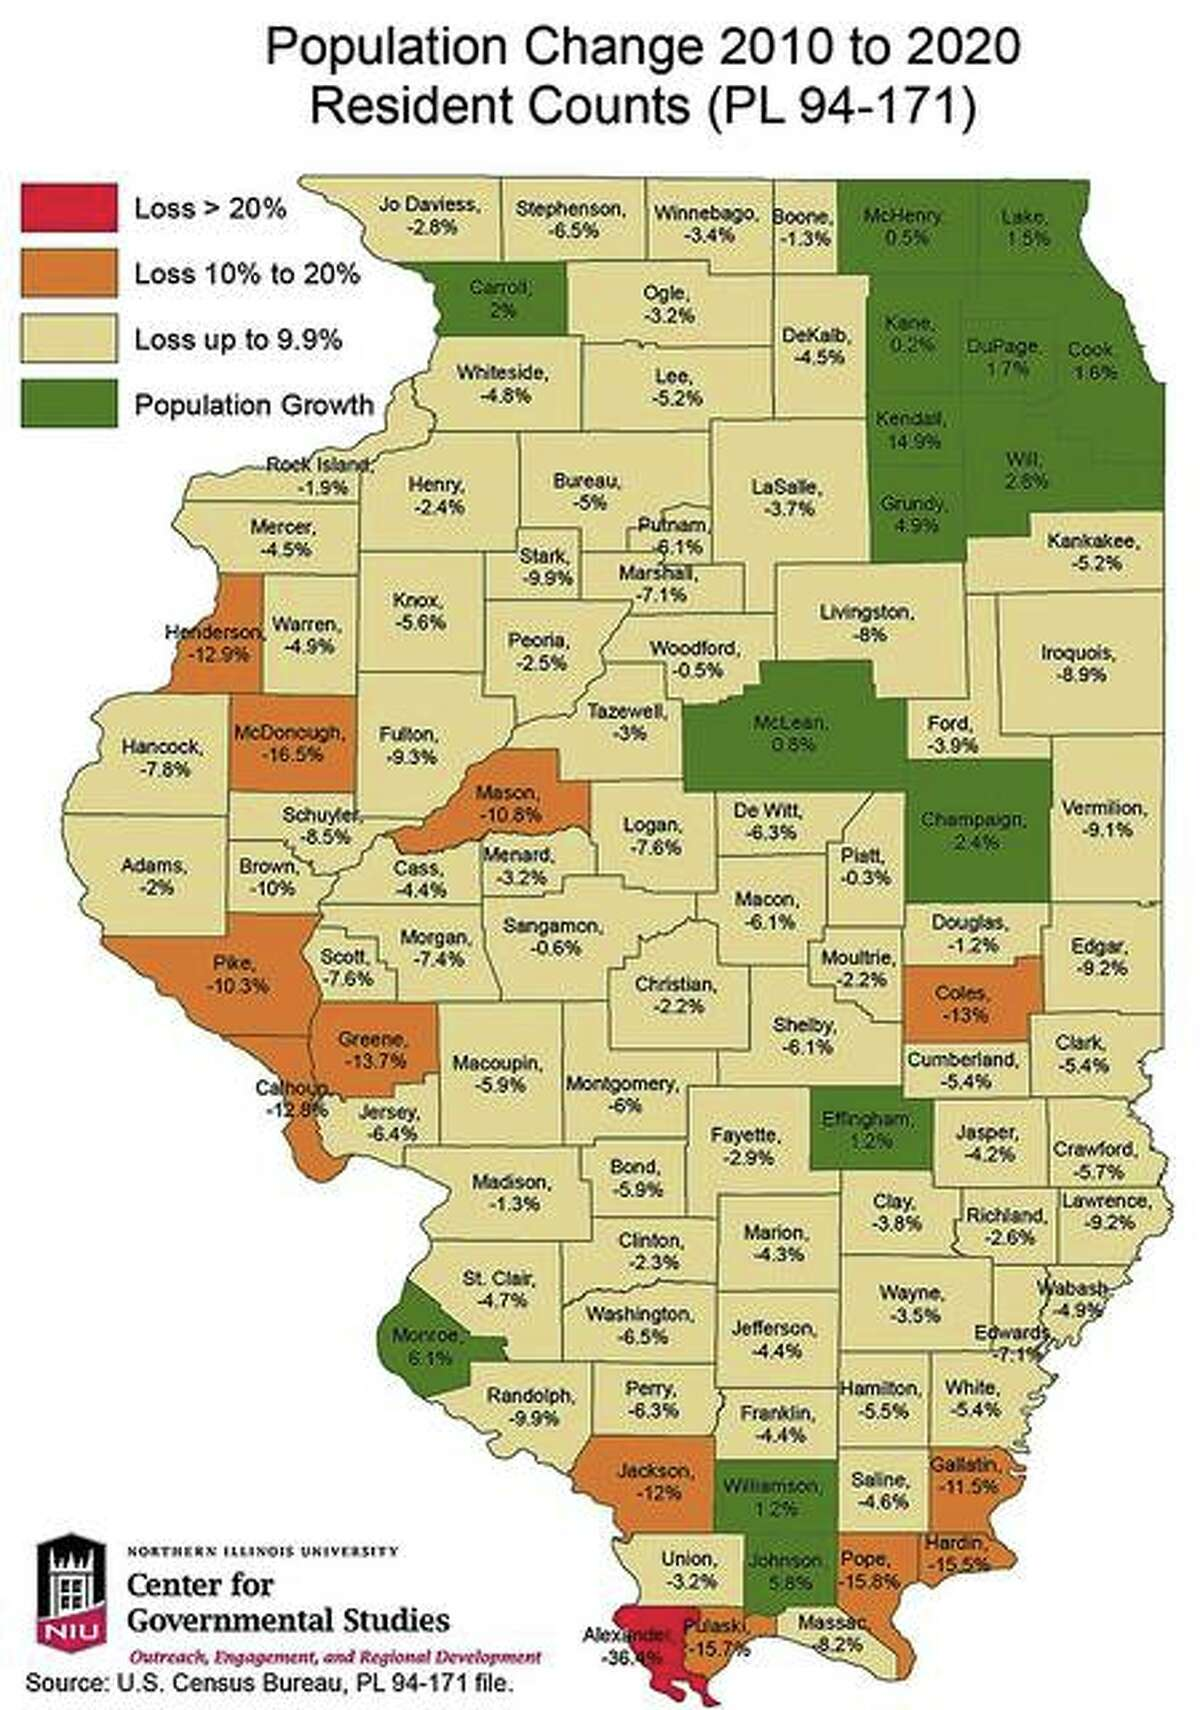 Illinois county population change from 2010 to 2020 based on U.S. Census data compiled by the Center for Governmental Studies at Northern Illinois University.